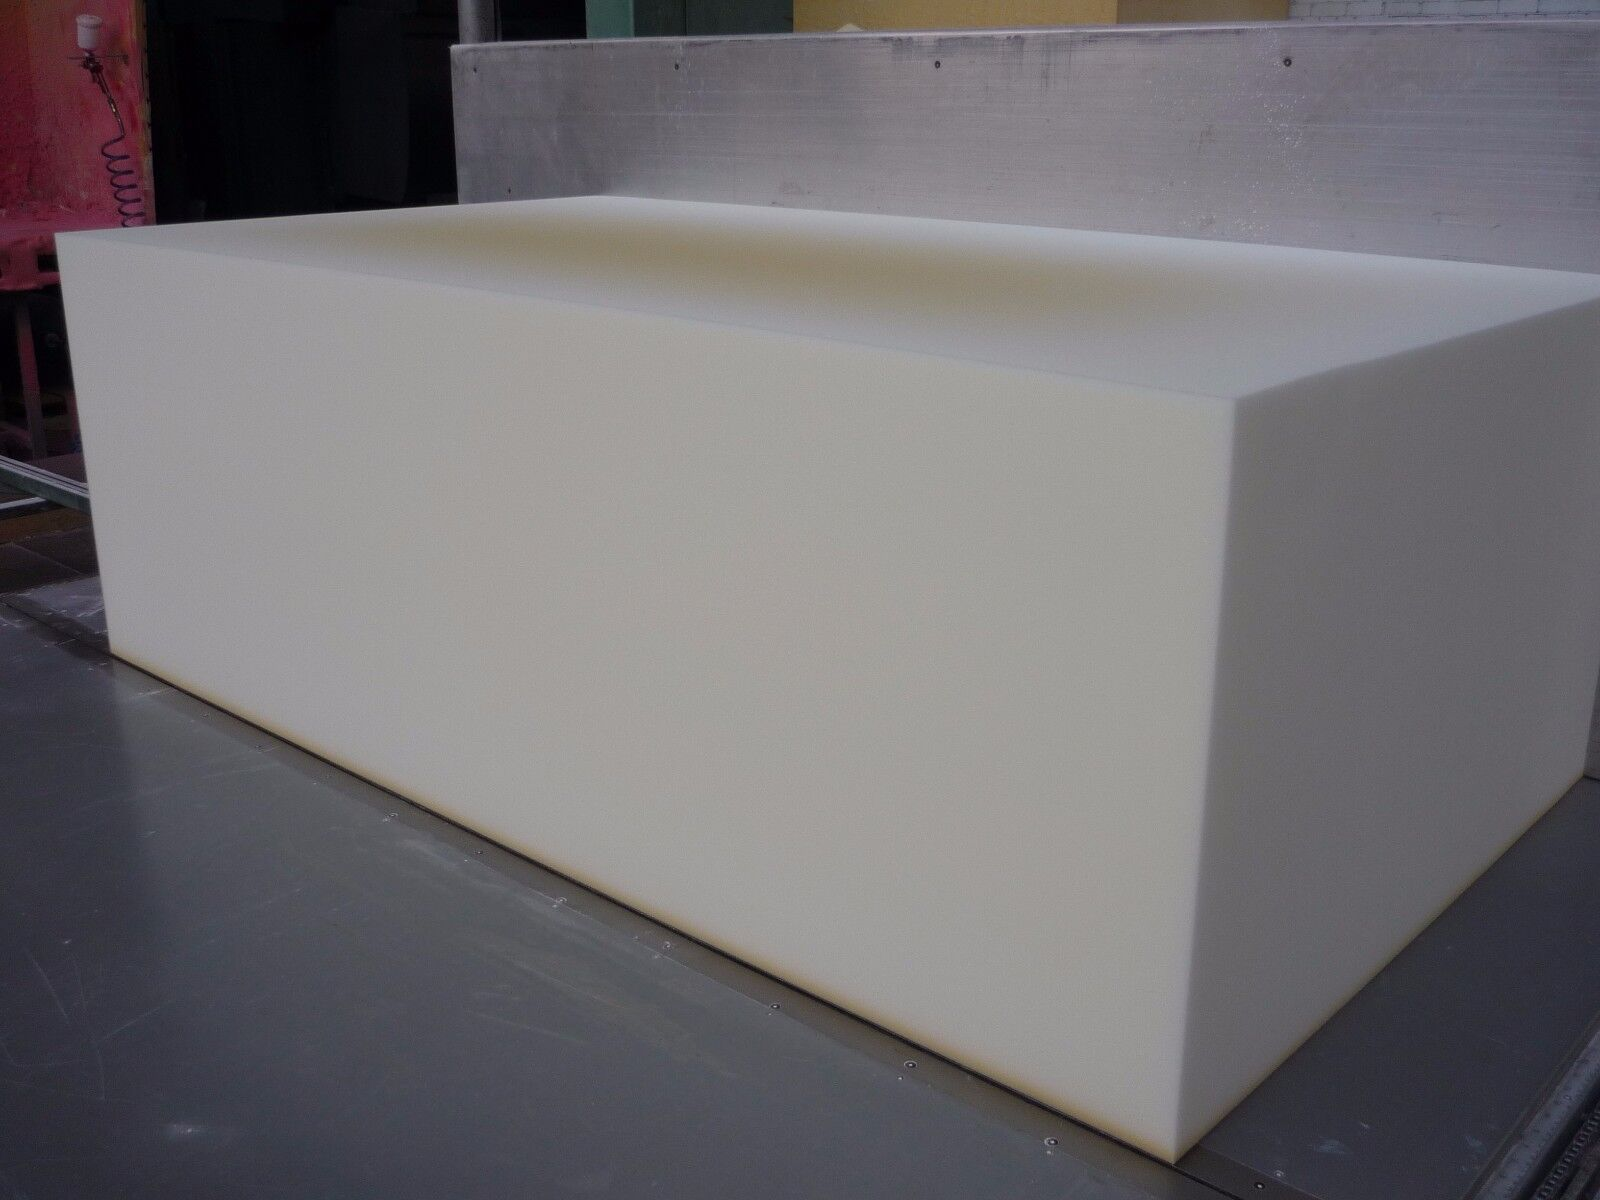 FOAM CUT TO ANY SIZE! EXAMPLE PALLET SEATING/BEDS/CARAVANS/SEATS/CRAFTS